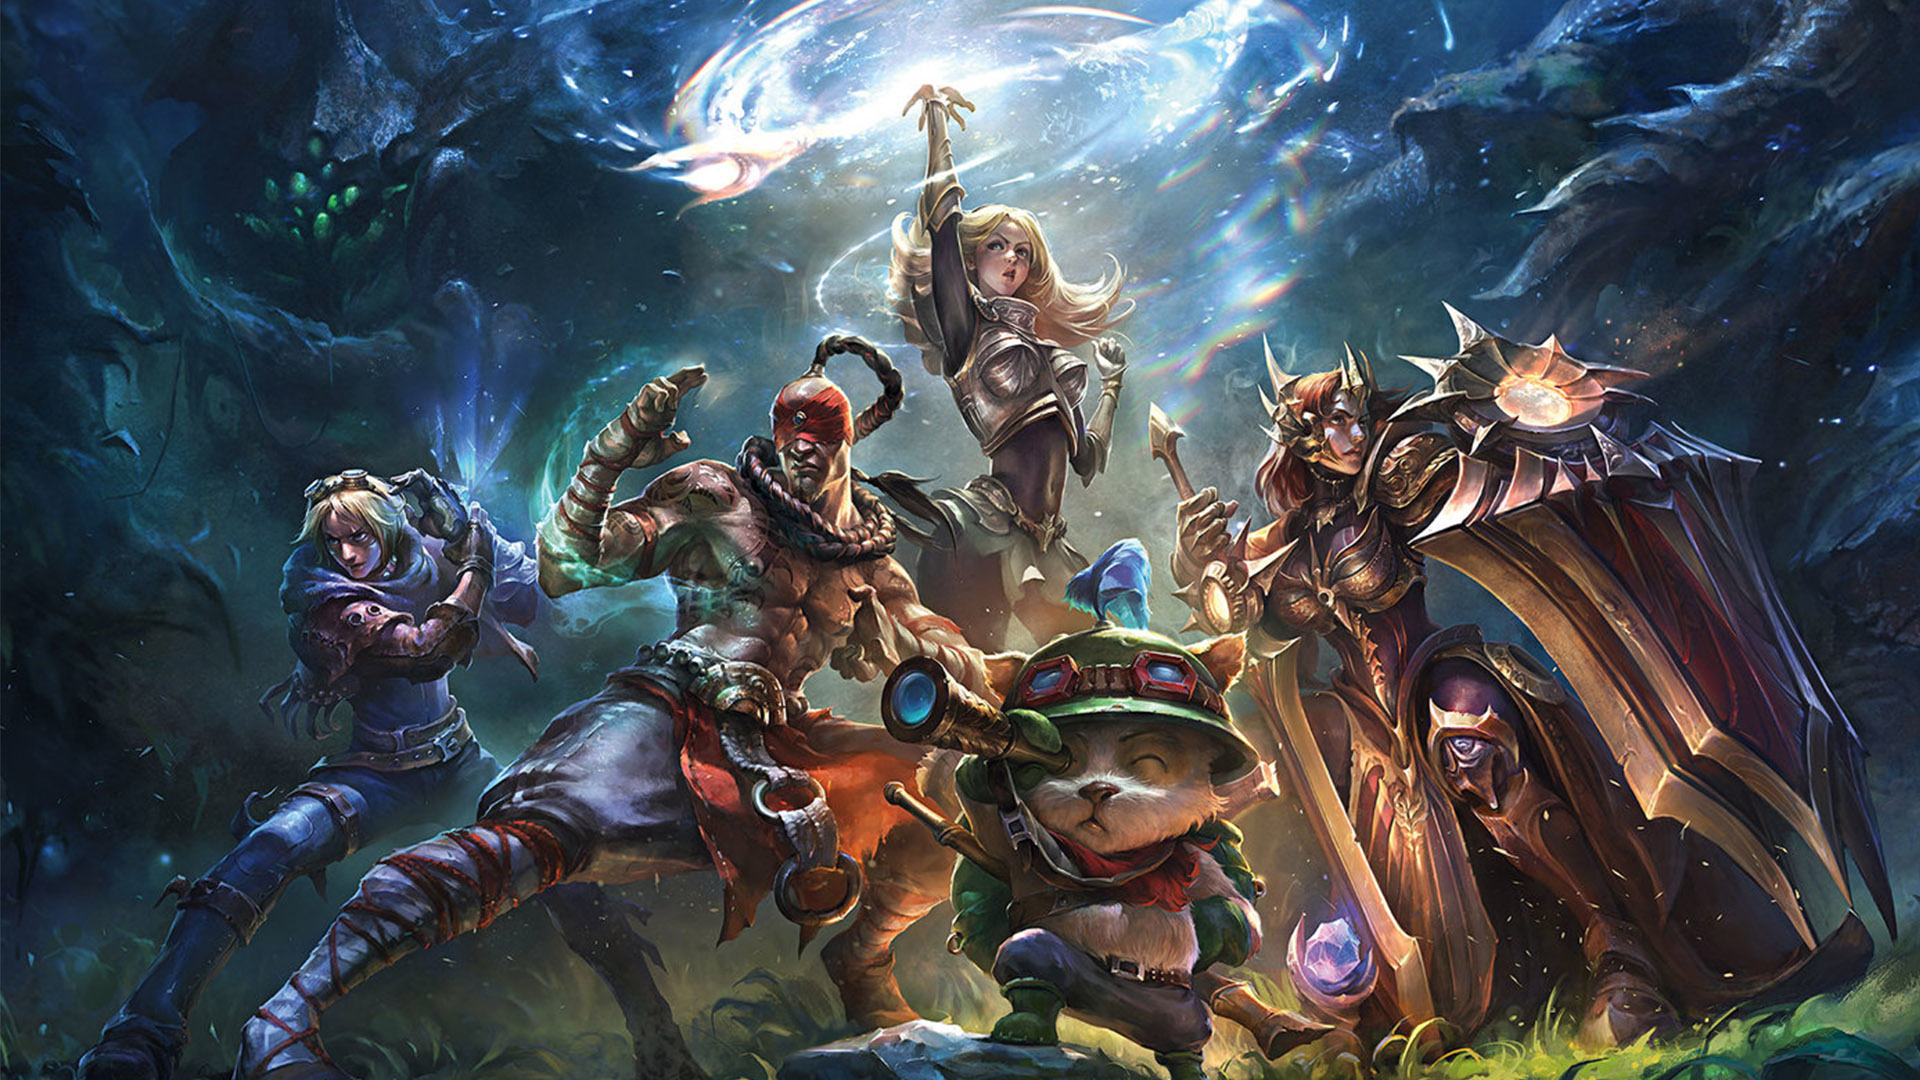 League of Legends characters standing on Summoner's Rift